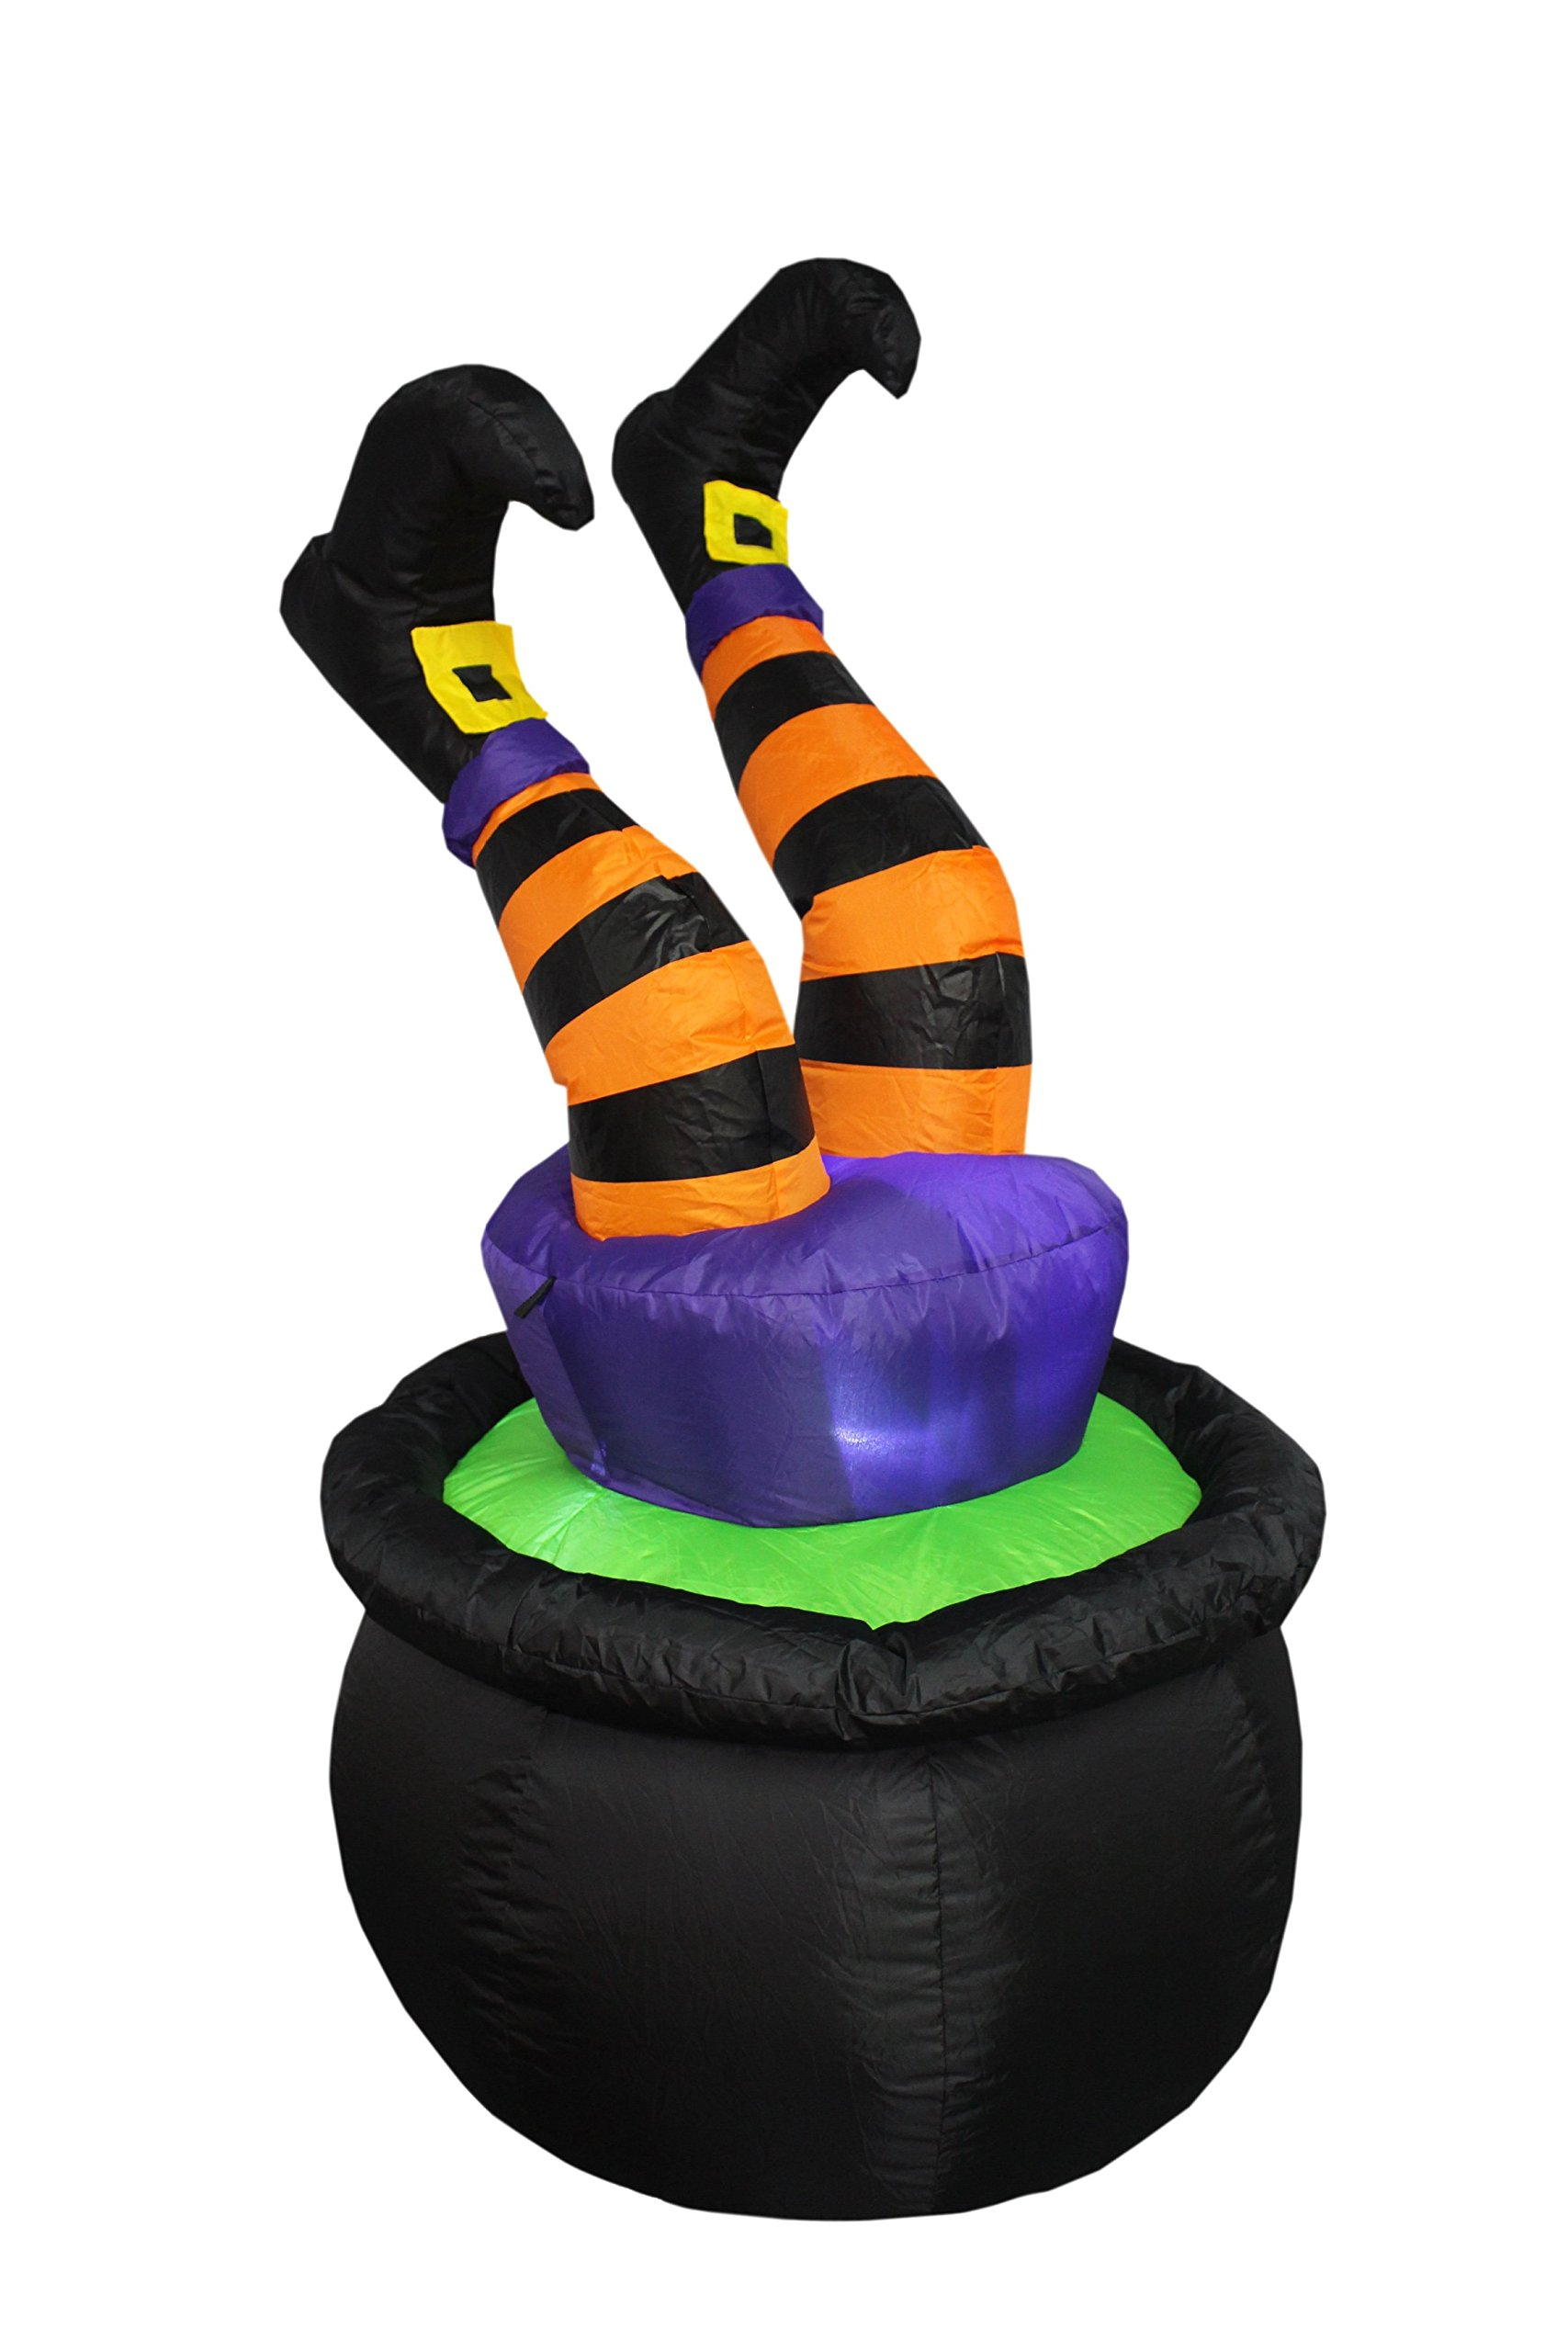 BZB Goods 4 Foot Tall Halloween Inflatable Witch Legs in Pot LED Lights Decor Outdoor Indoor Holiday Decorations, Blow up Lighted Yard Decor, Lawn Inflatables Home Family Outside